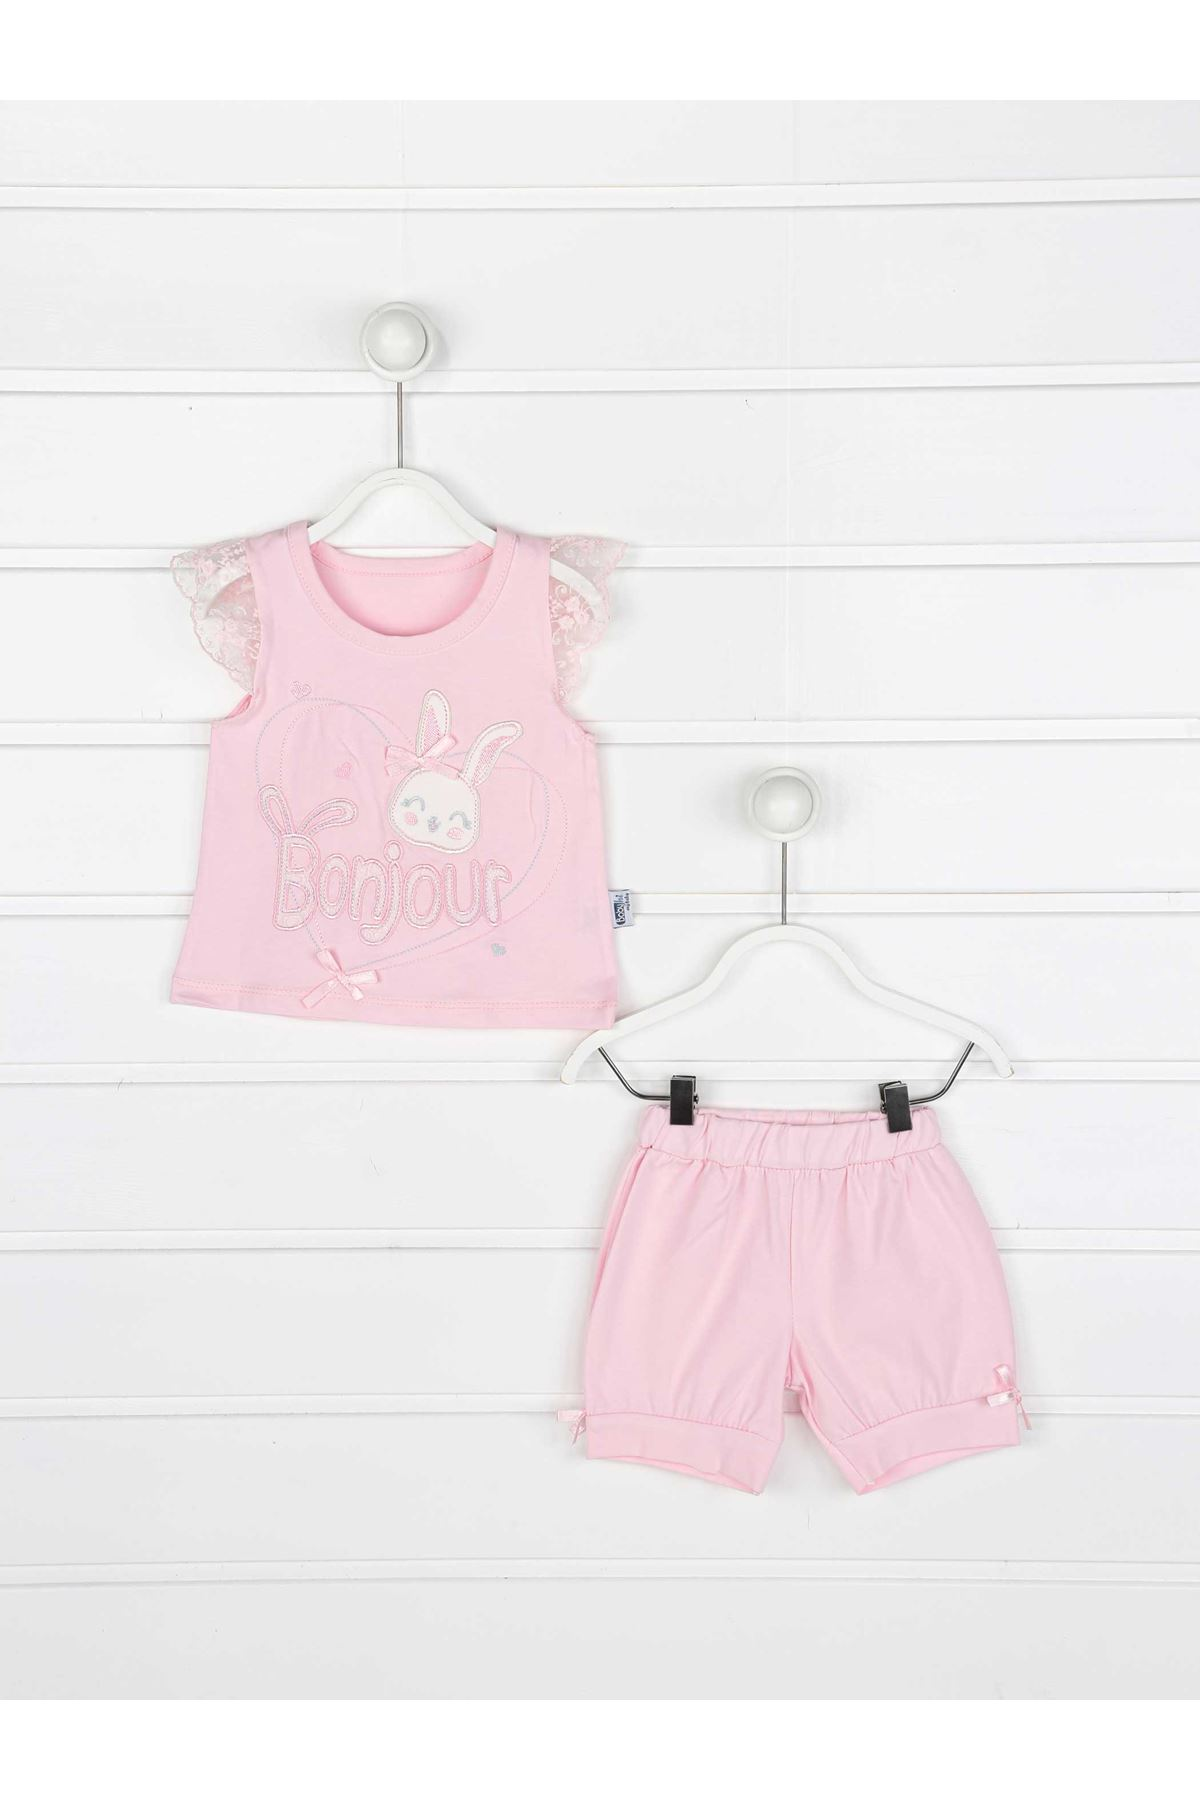 Pink summer baby girl shorts T-shirt 2-piece suit babies models cotton seasonal summer holiday clothes